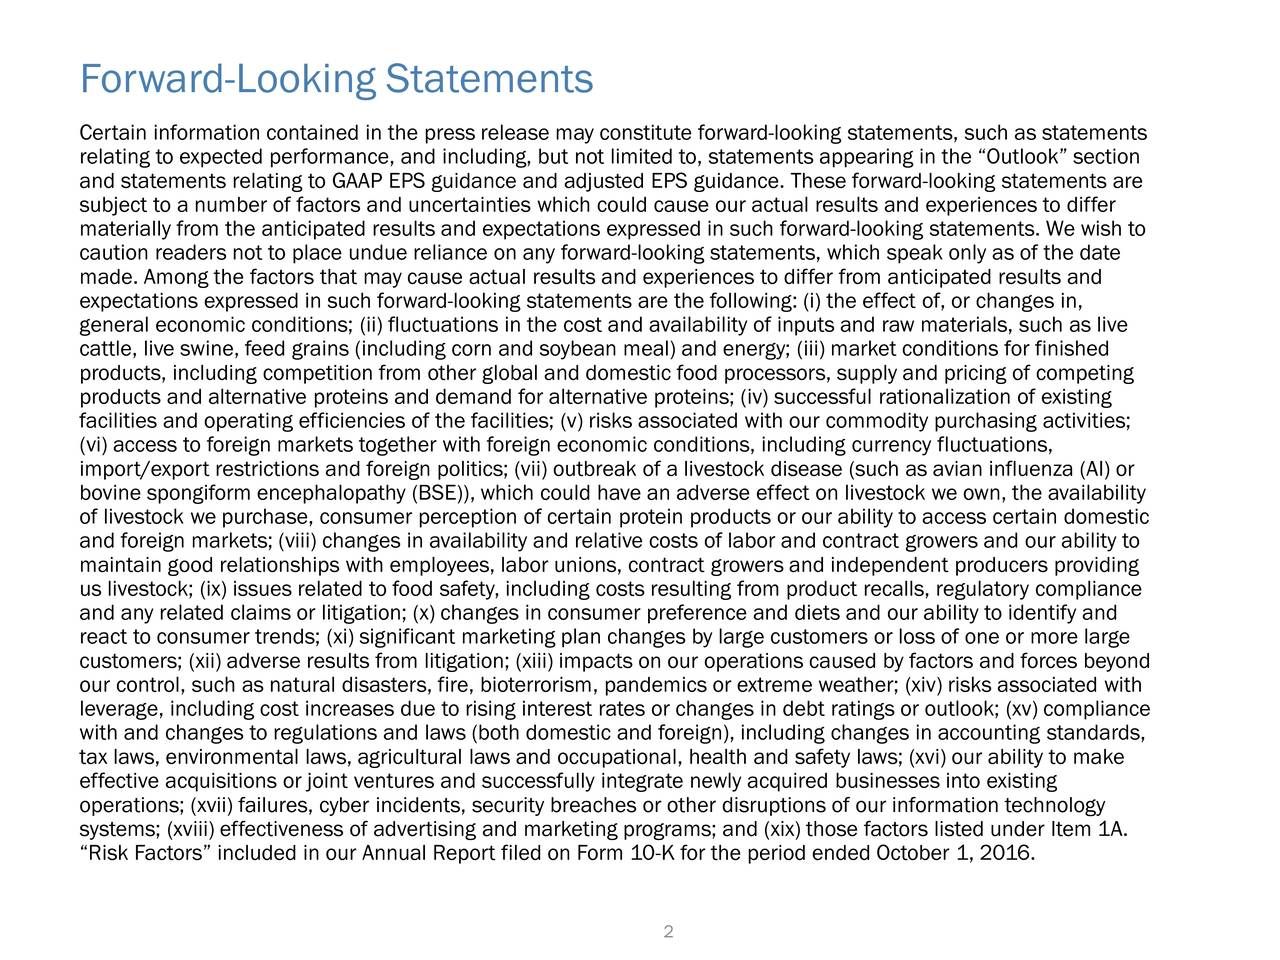 Certain information contained in the press release may constitute forward-looking statements, such as statements relating to expected performance, and including, but not limited to, statements appearing in the Outlook section and statements relating to GAAP EPS guidance and adjusted EPS guidance. These forward-looking statements are subject to a number of factors and uncertainties which could cause our actual results and experiences to differ materially from the anticipated results and expectations expressed in such forward-looking statements. We wish to caution readers not to place undue reliance on any forward-looking statements, which speak only as of the date made. Among the factors that may cause actual results and experiences to differ from anticipated results and expectations expressed in such forward-looking statements are the following: (i) the effect of, or changes in, general economic conditions; (ii) fluctuations in the cost and availability of inputs and raw materials, such as live cattle, live swine, feed grains (including corn and soybean meal) and energy; (iii) market conditions for finished products, including competition from other global and domestic food processors, supply and pricing of competing products and alternative proteins and demand for alternative proteins; (iv) successful rationalization of existing facilities and operating efficiencies of the facilities; (v) risks associated with our commodity purchasing activities; (vi) access to foreign markets together with foreign economic conditions, including currency fluctuations, import/export restrictions and foreign politics; (vii) outbreak of a livestock disease (such as avian influenza (AI) or bovine spongiform encephalopathy (BSE)), which could have an adverse effect on livestock we own, the availability of livestock we purchase, consumer perception of certain protein products or our ability to access certain domestic and foreign markets; (viii) changes in availability and relative costs 